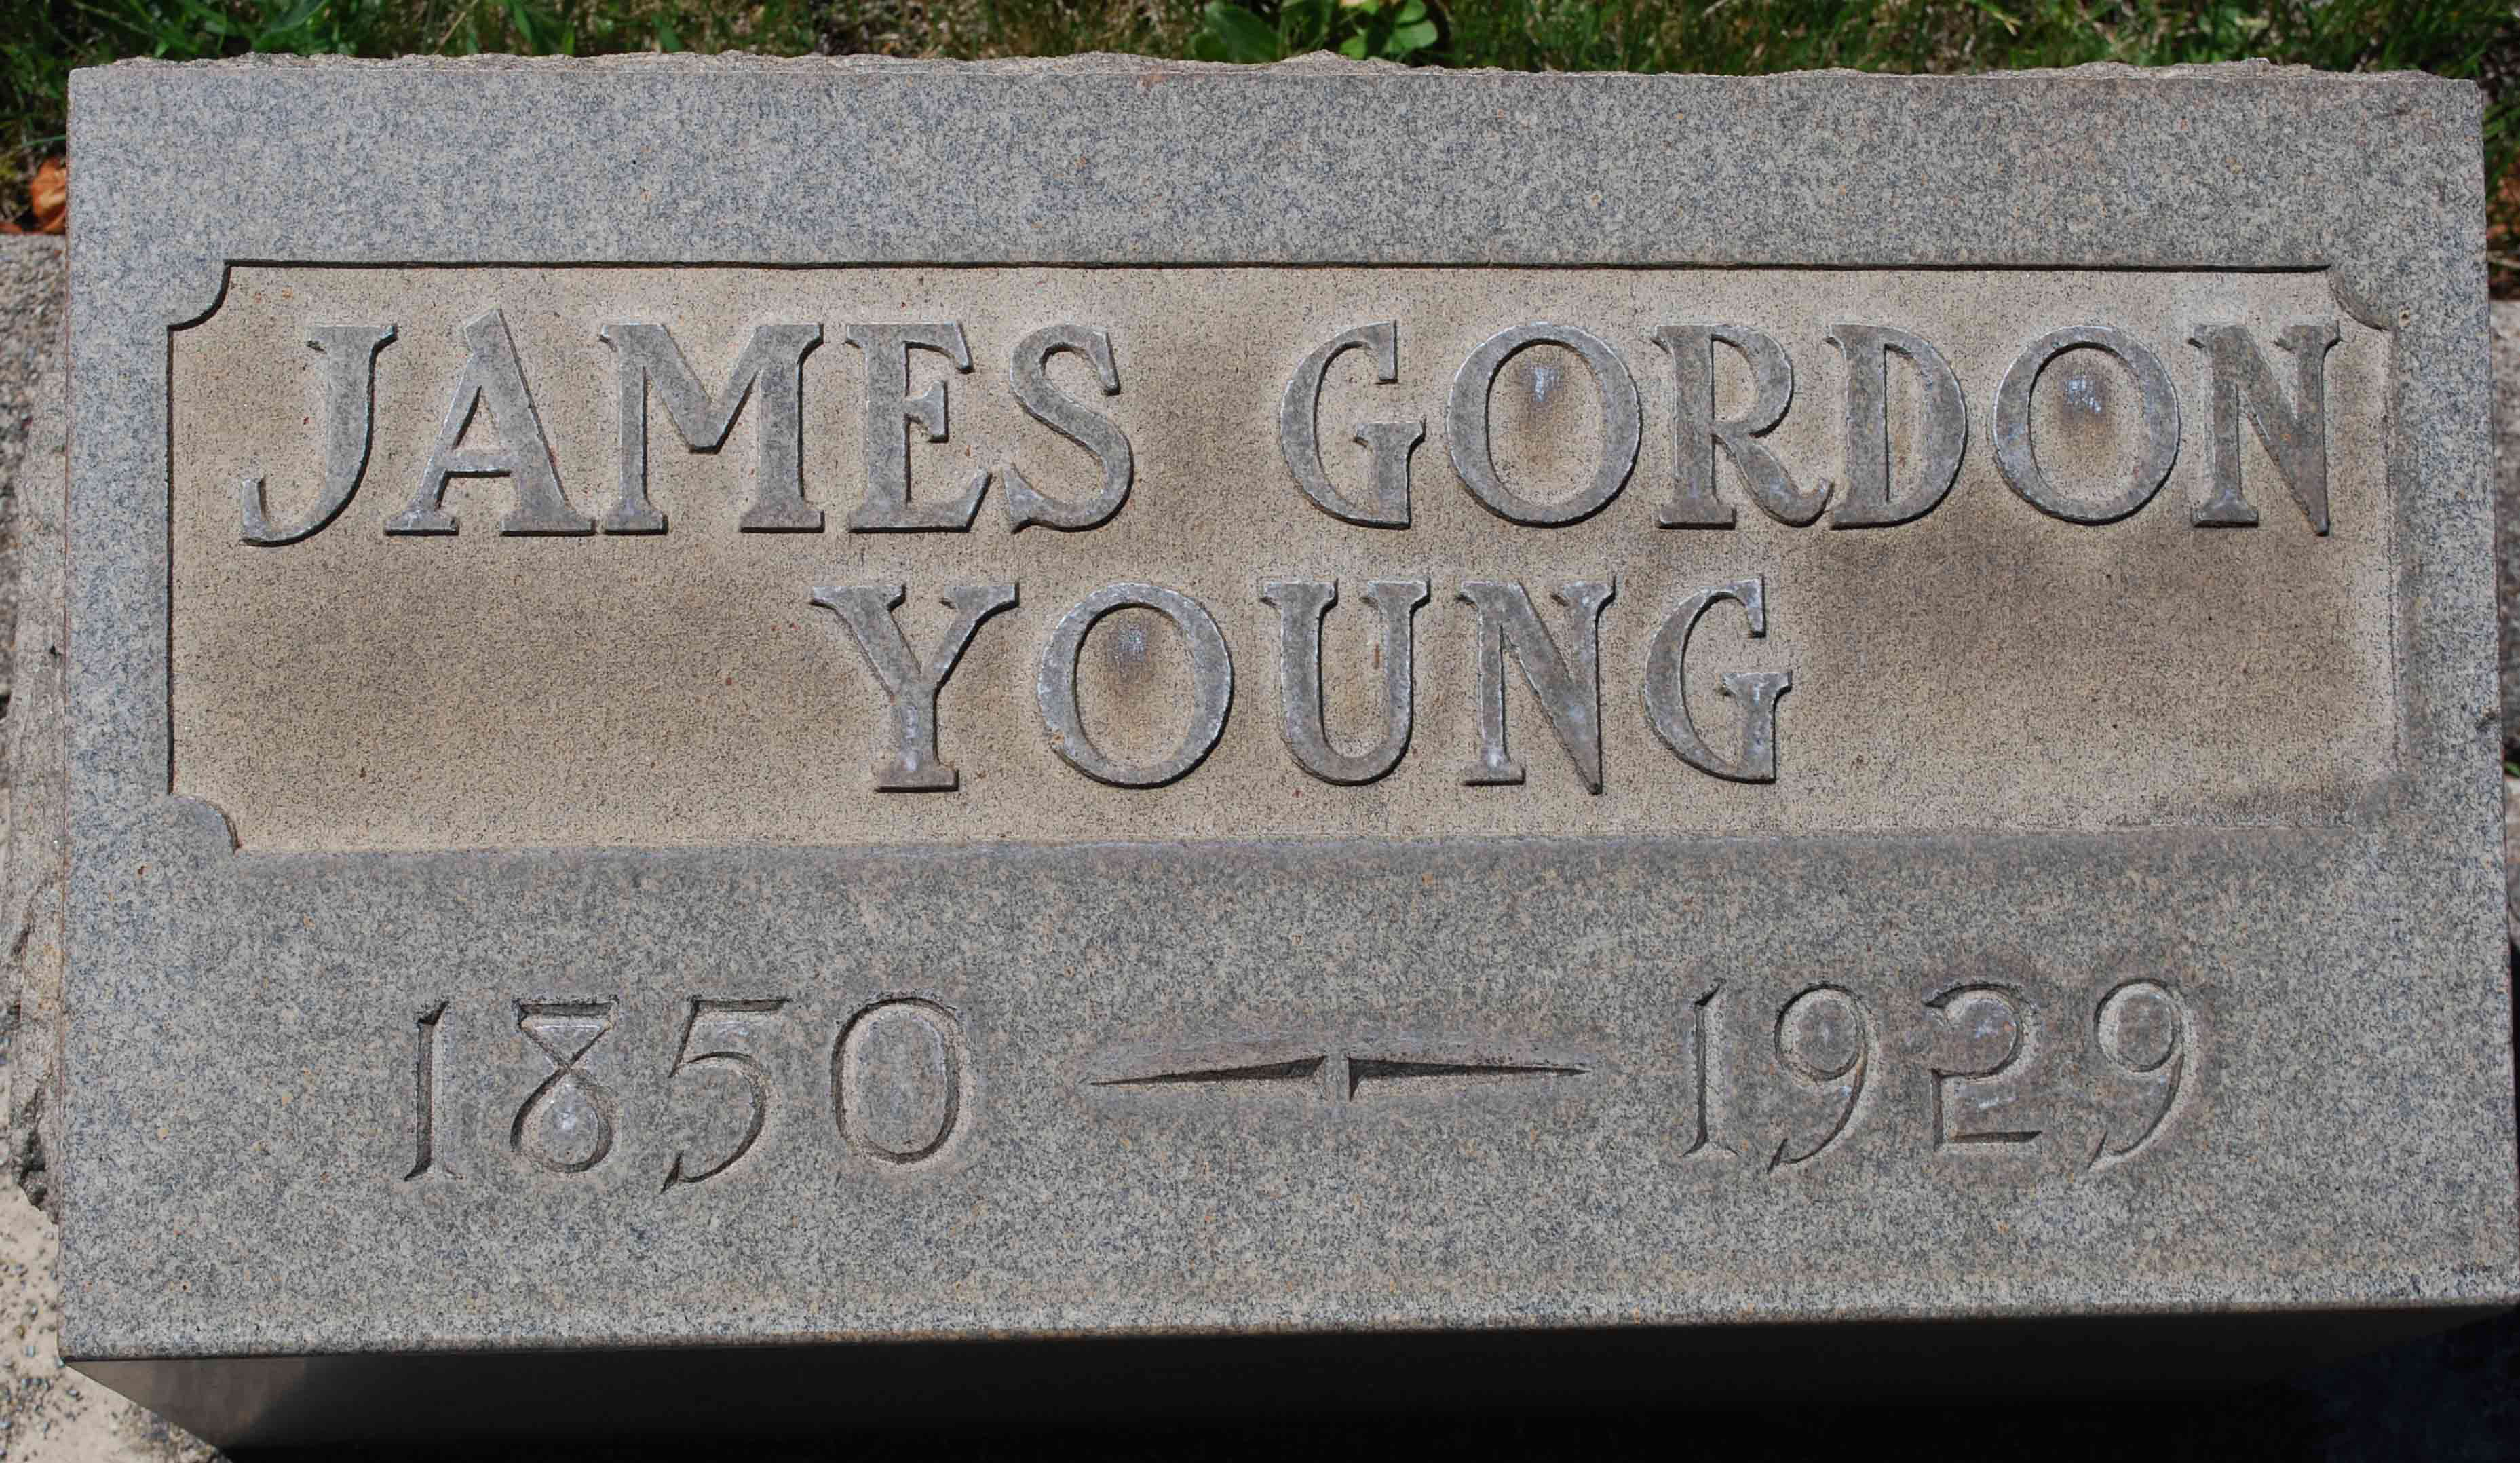 Gordon Lyle Young